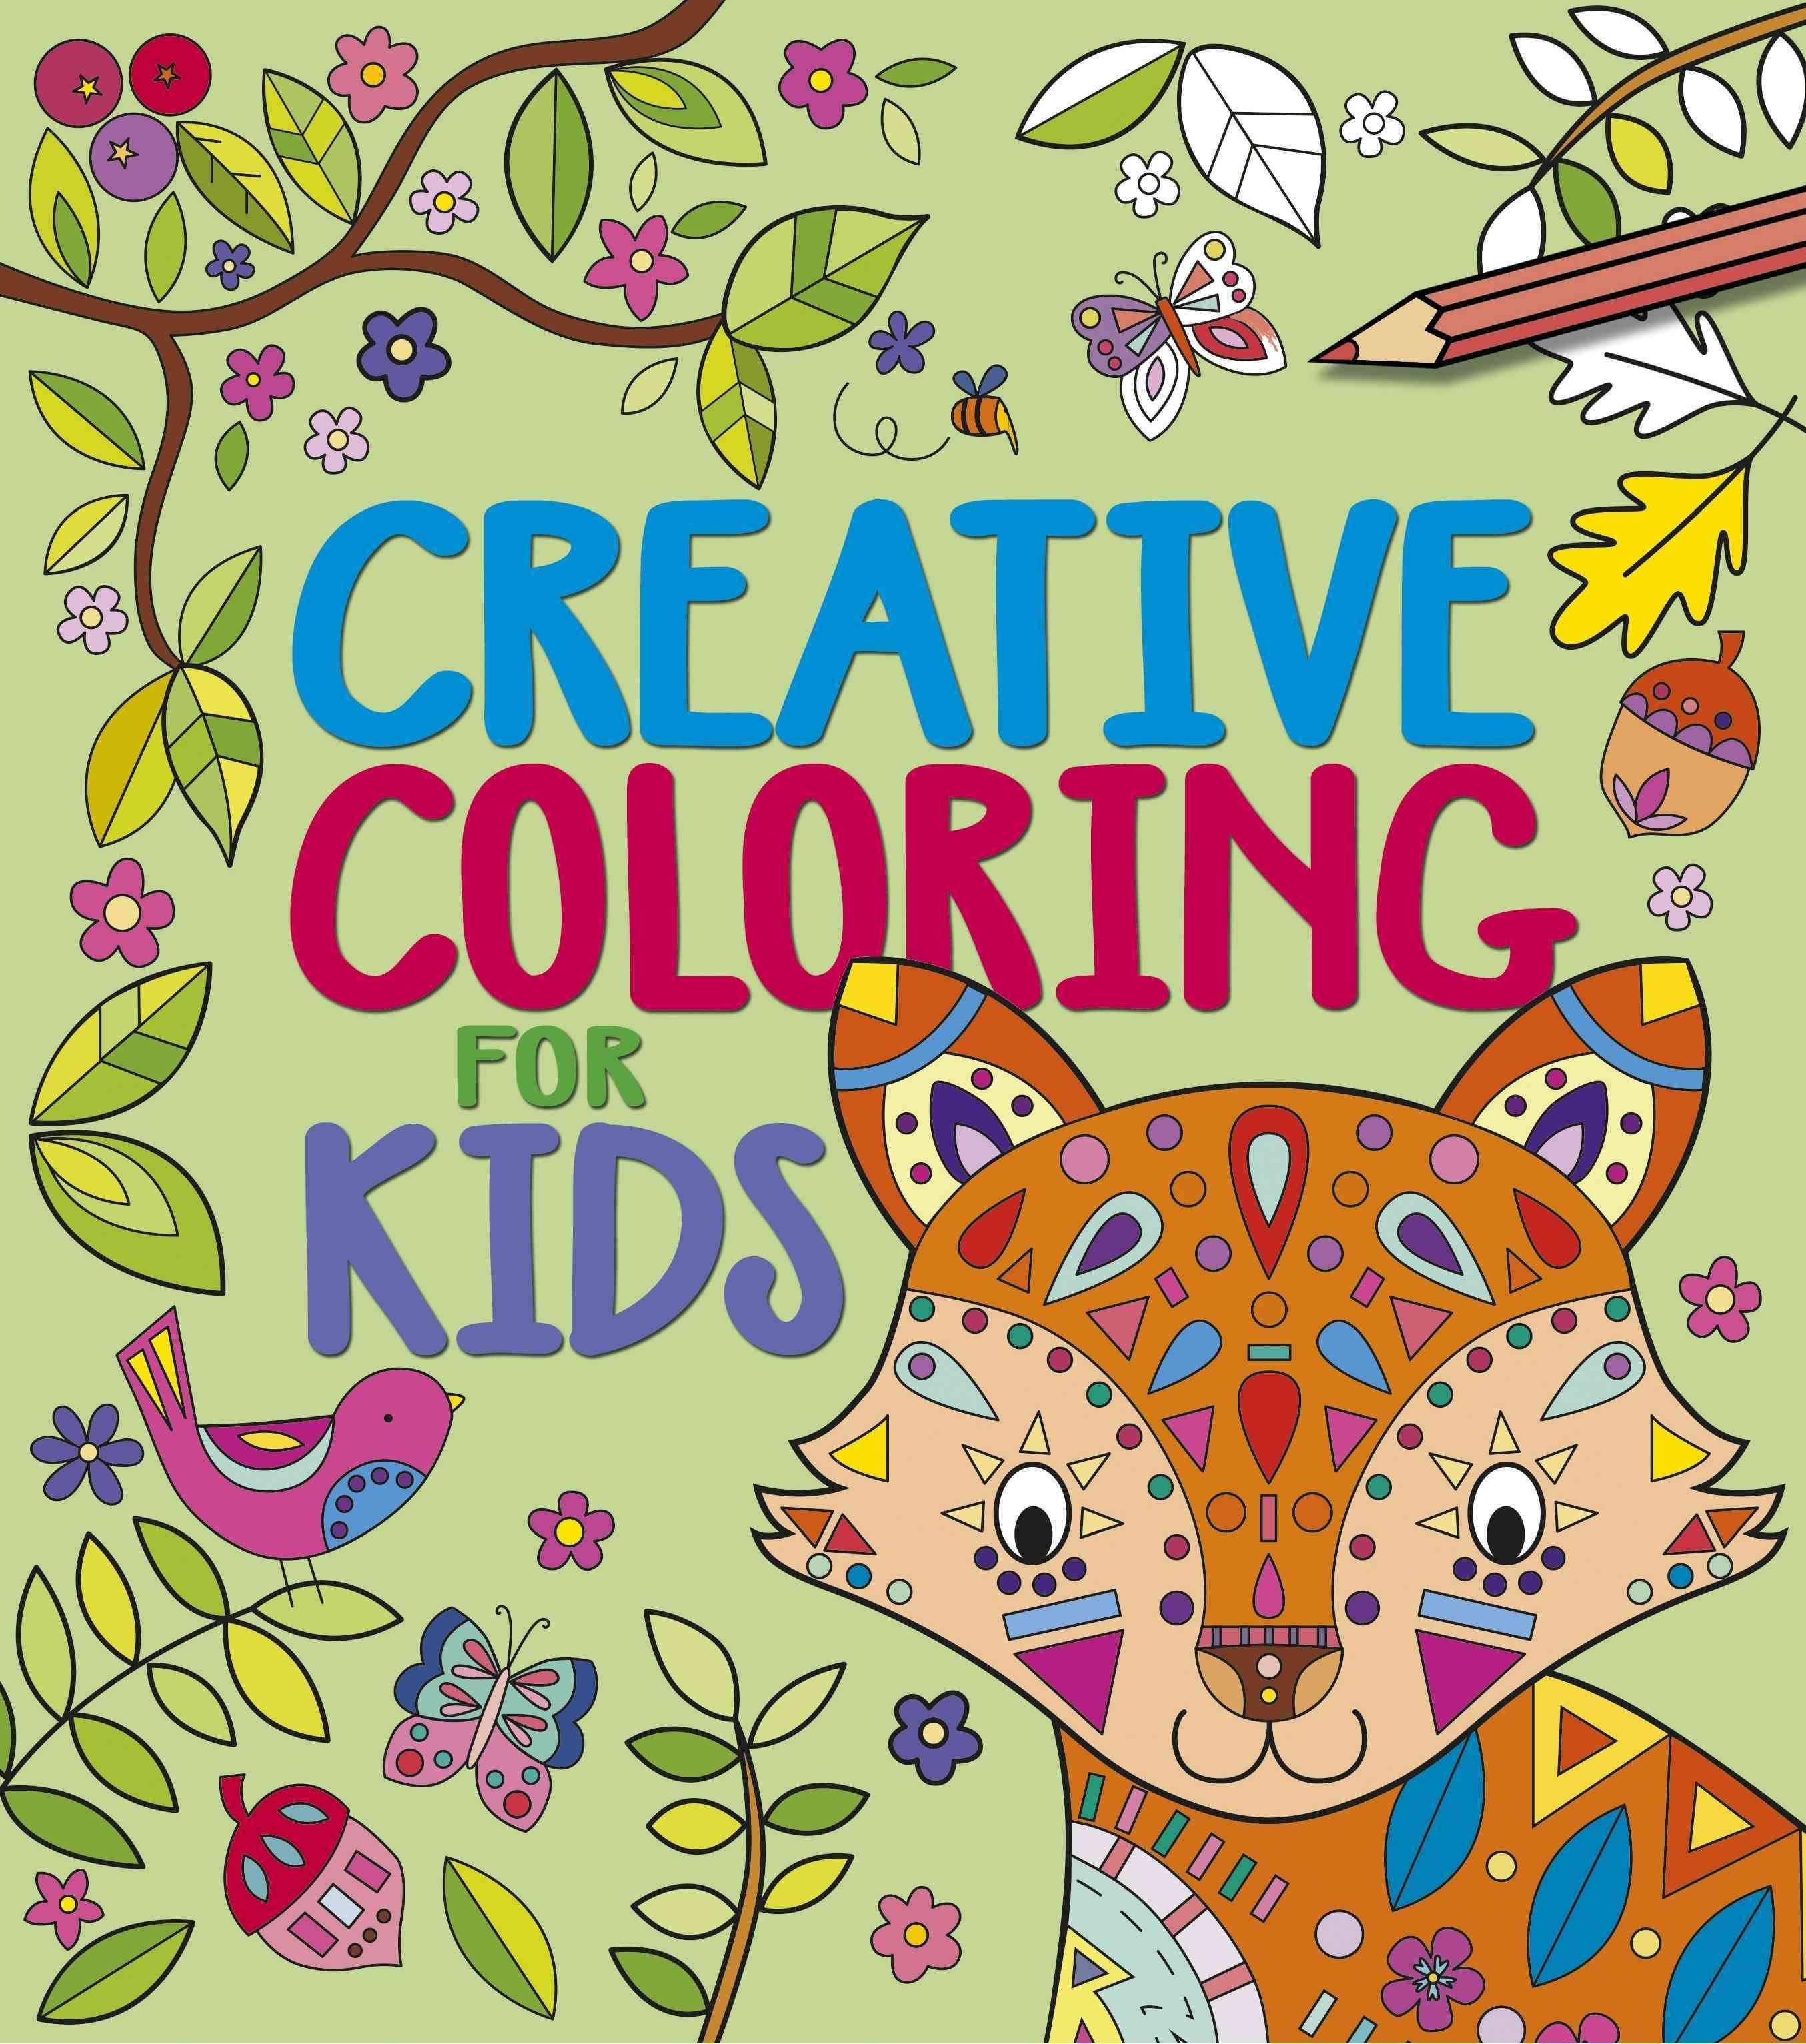 Creative Coloring for Kids | Products | Pinterest | Online book ...